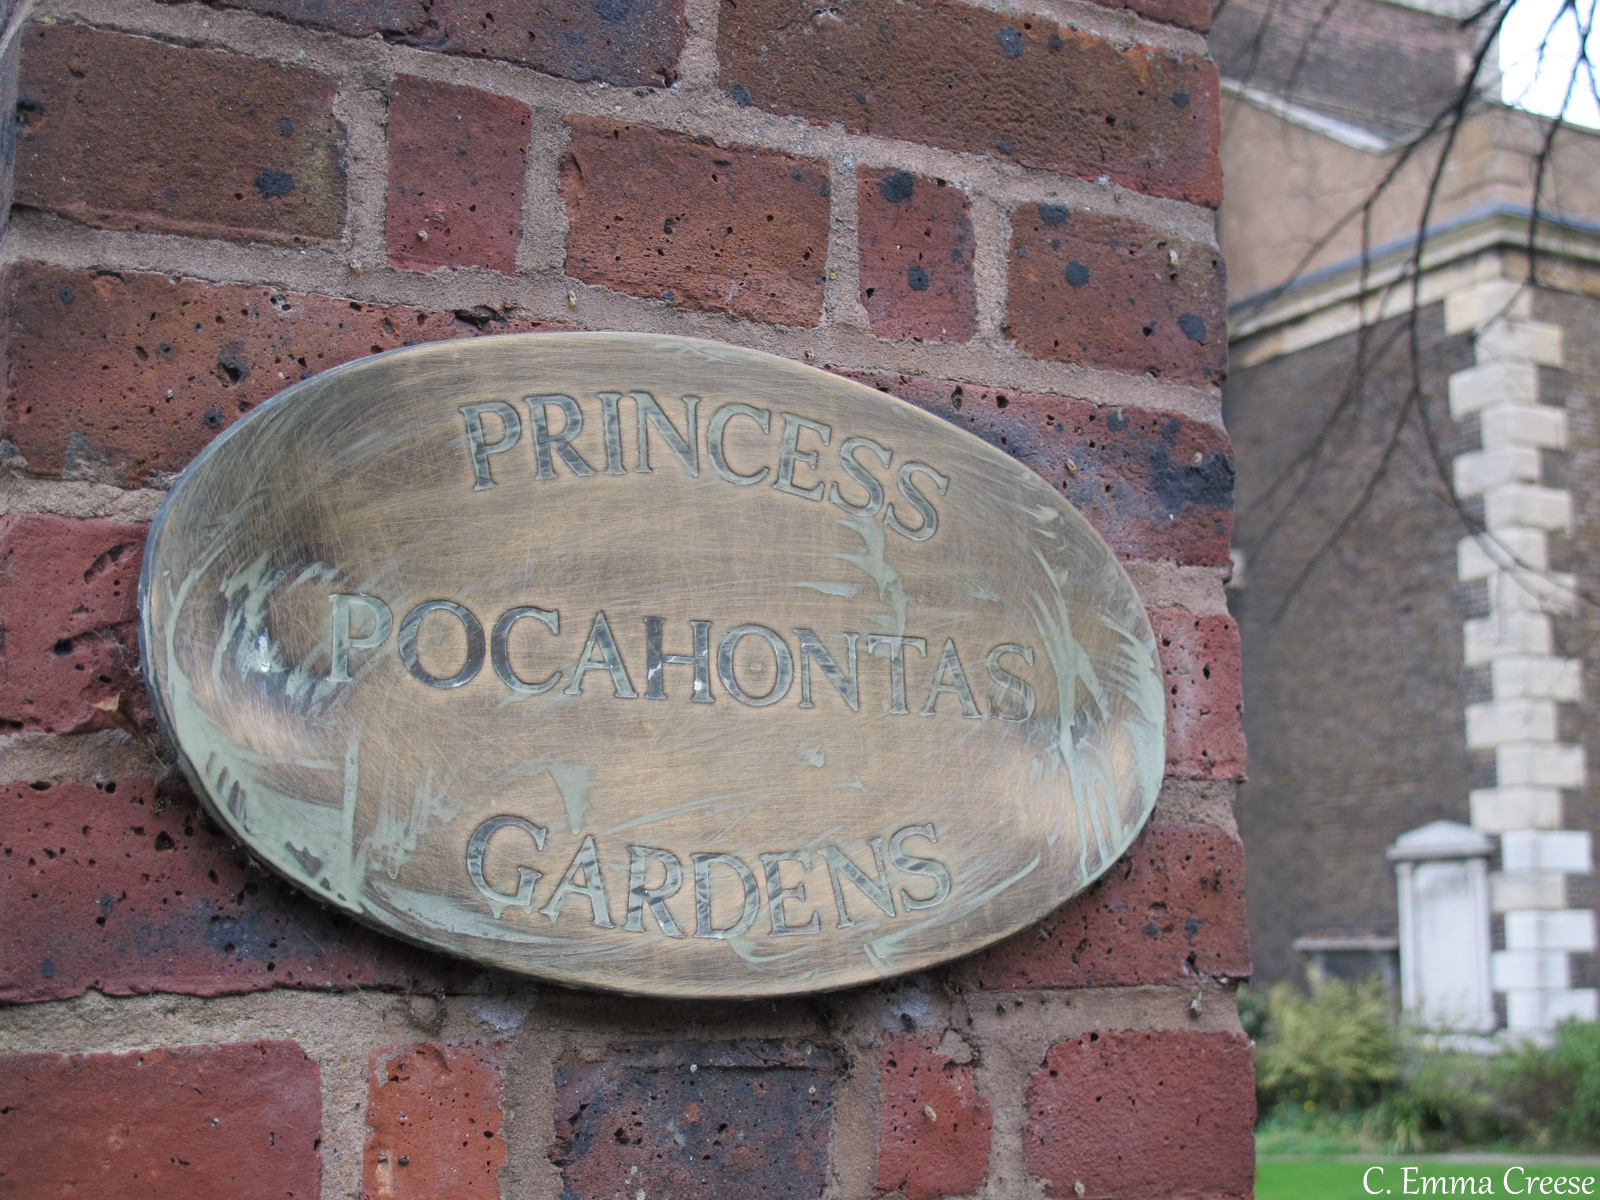 Pocahontas and her connection with Gravesend, Kent